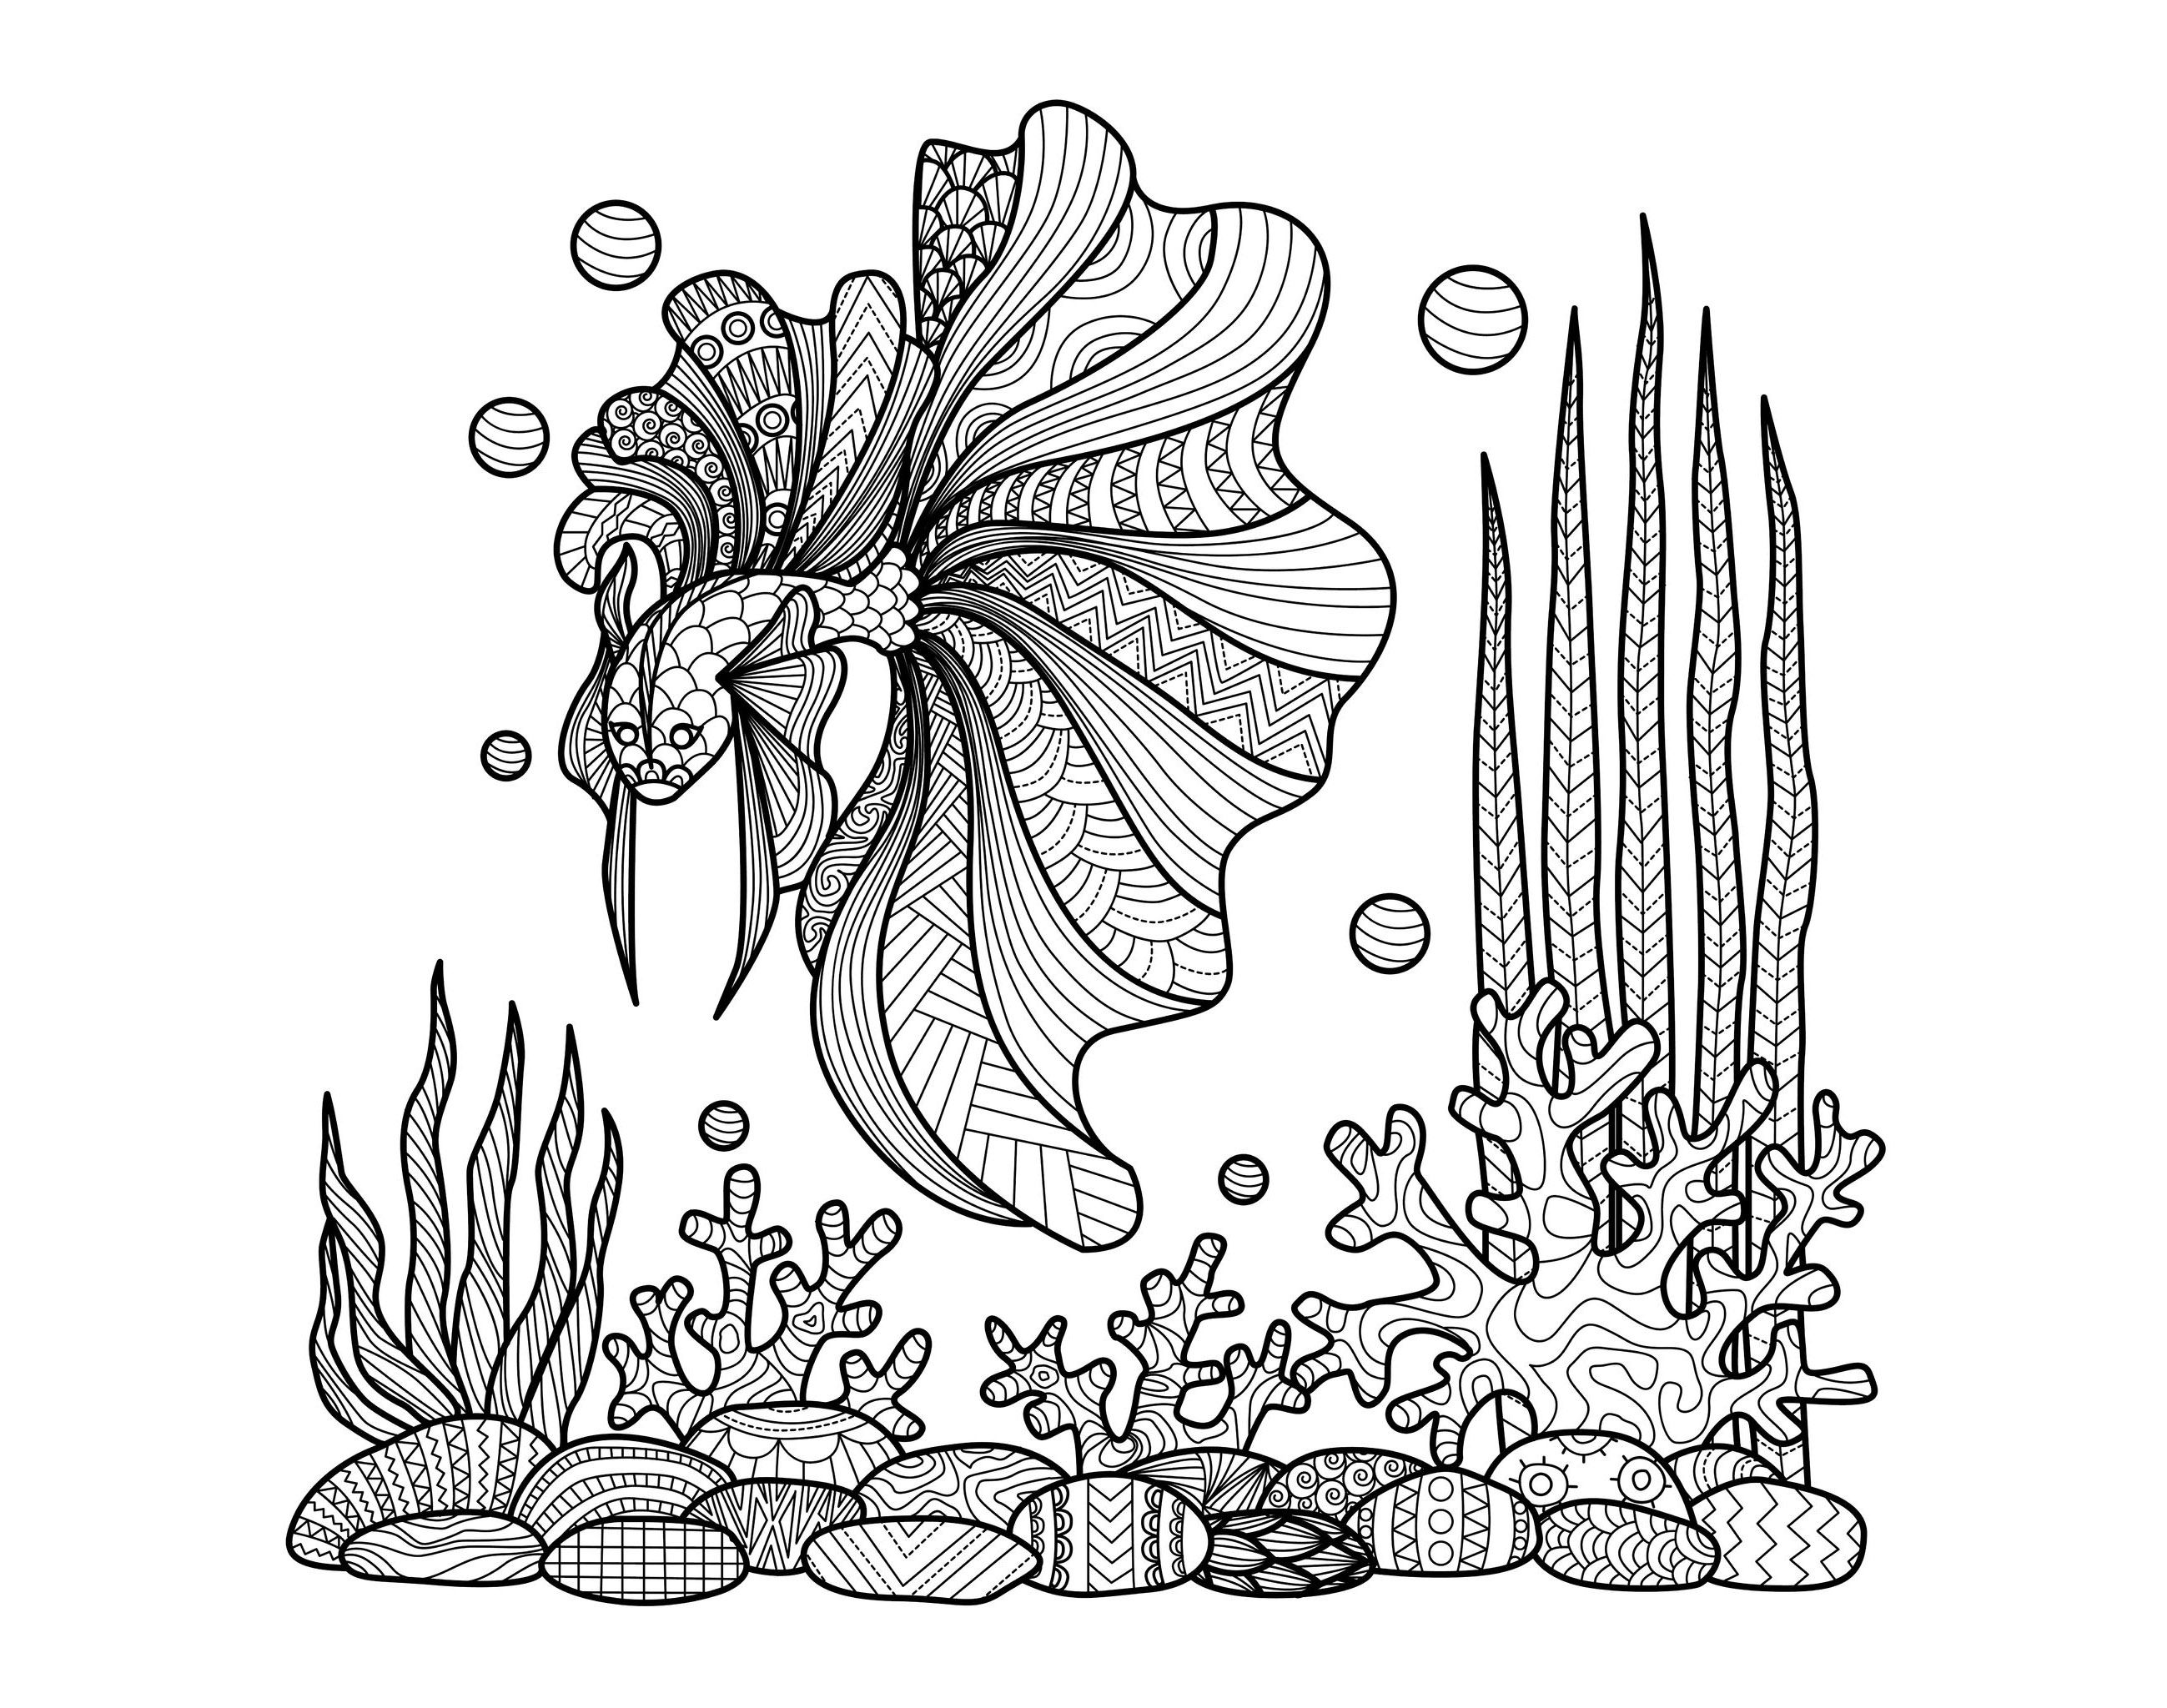 Coloring pages for adults zentangle - Free Coloring Page Coloring Adult Zentangle Fish On Corals By